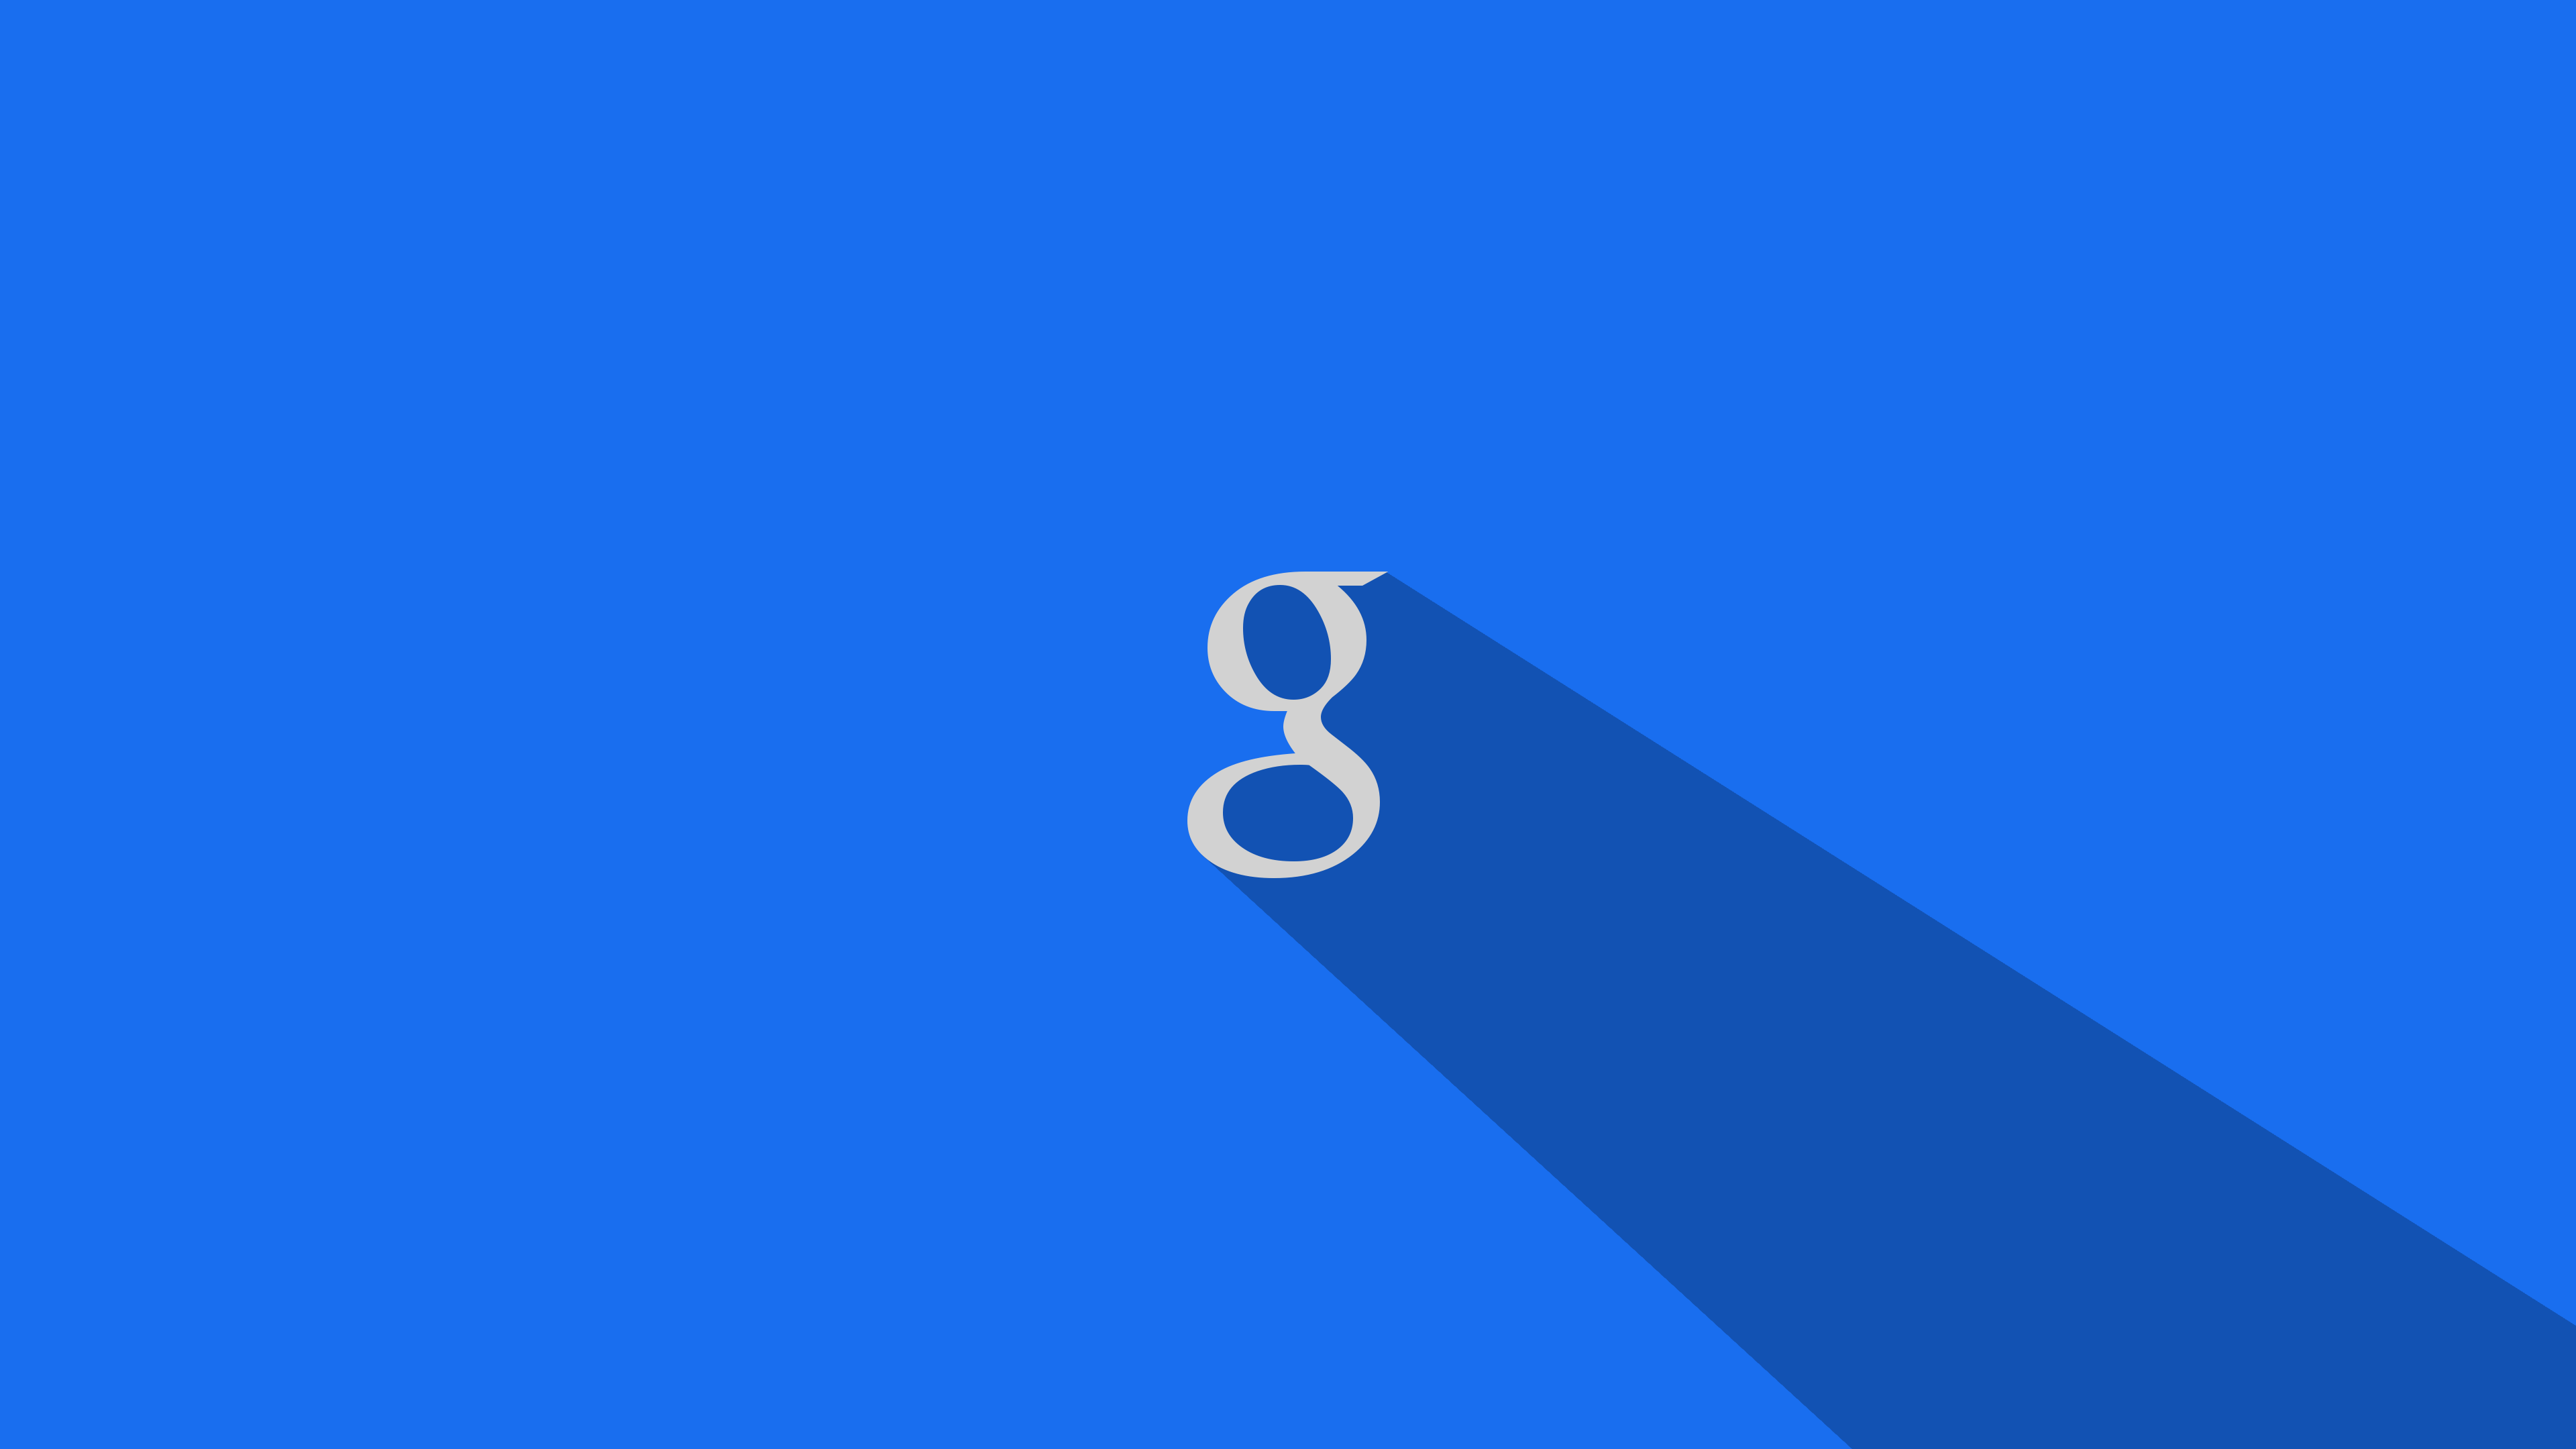 Background image for google - Google Wallpaper Desktop Background